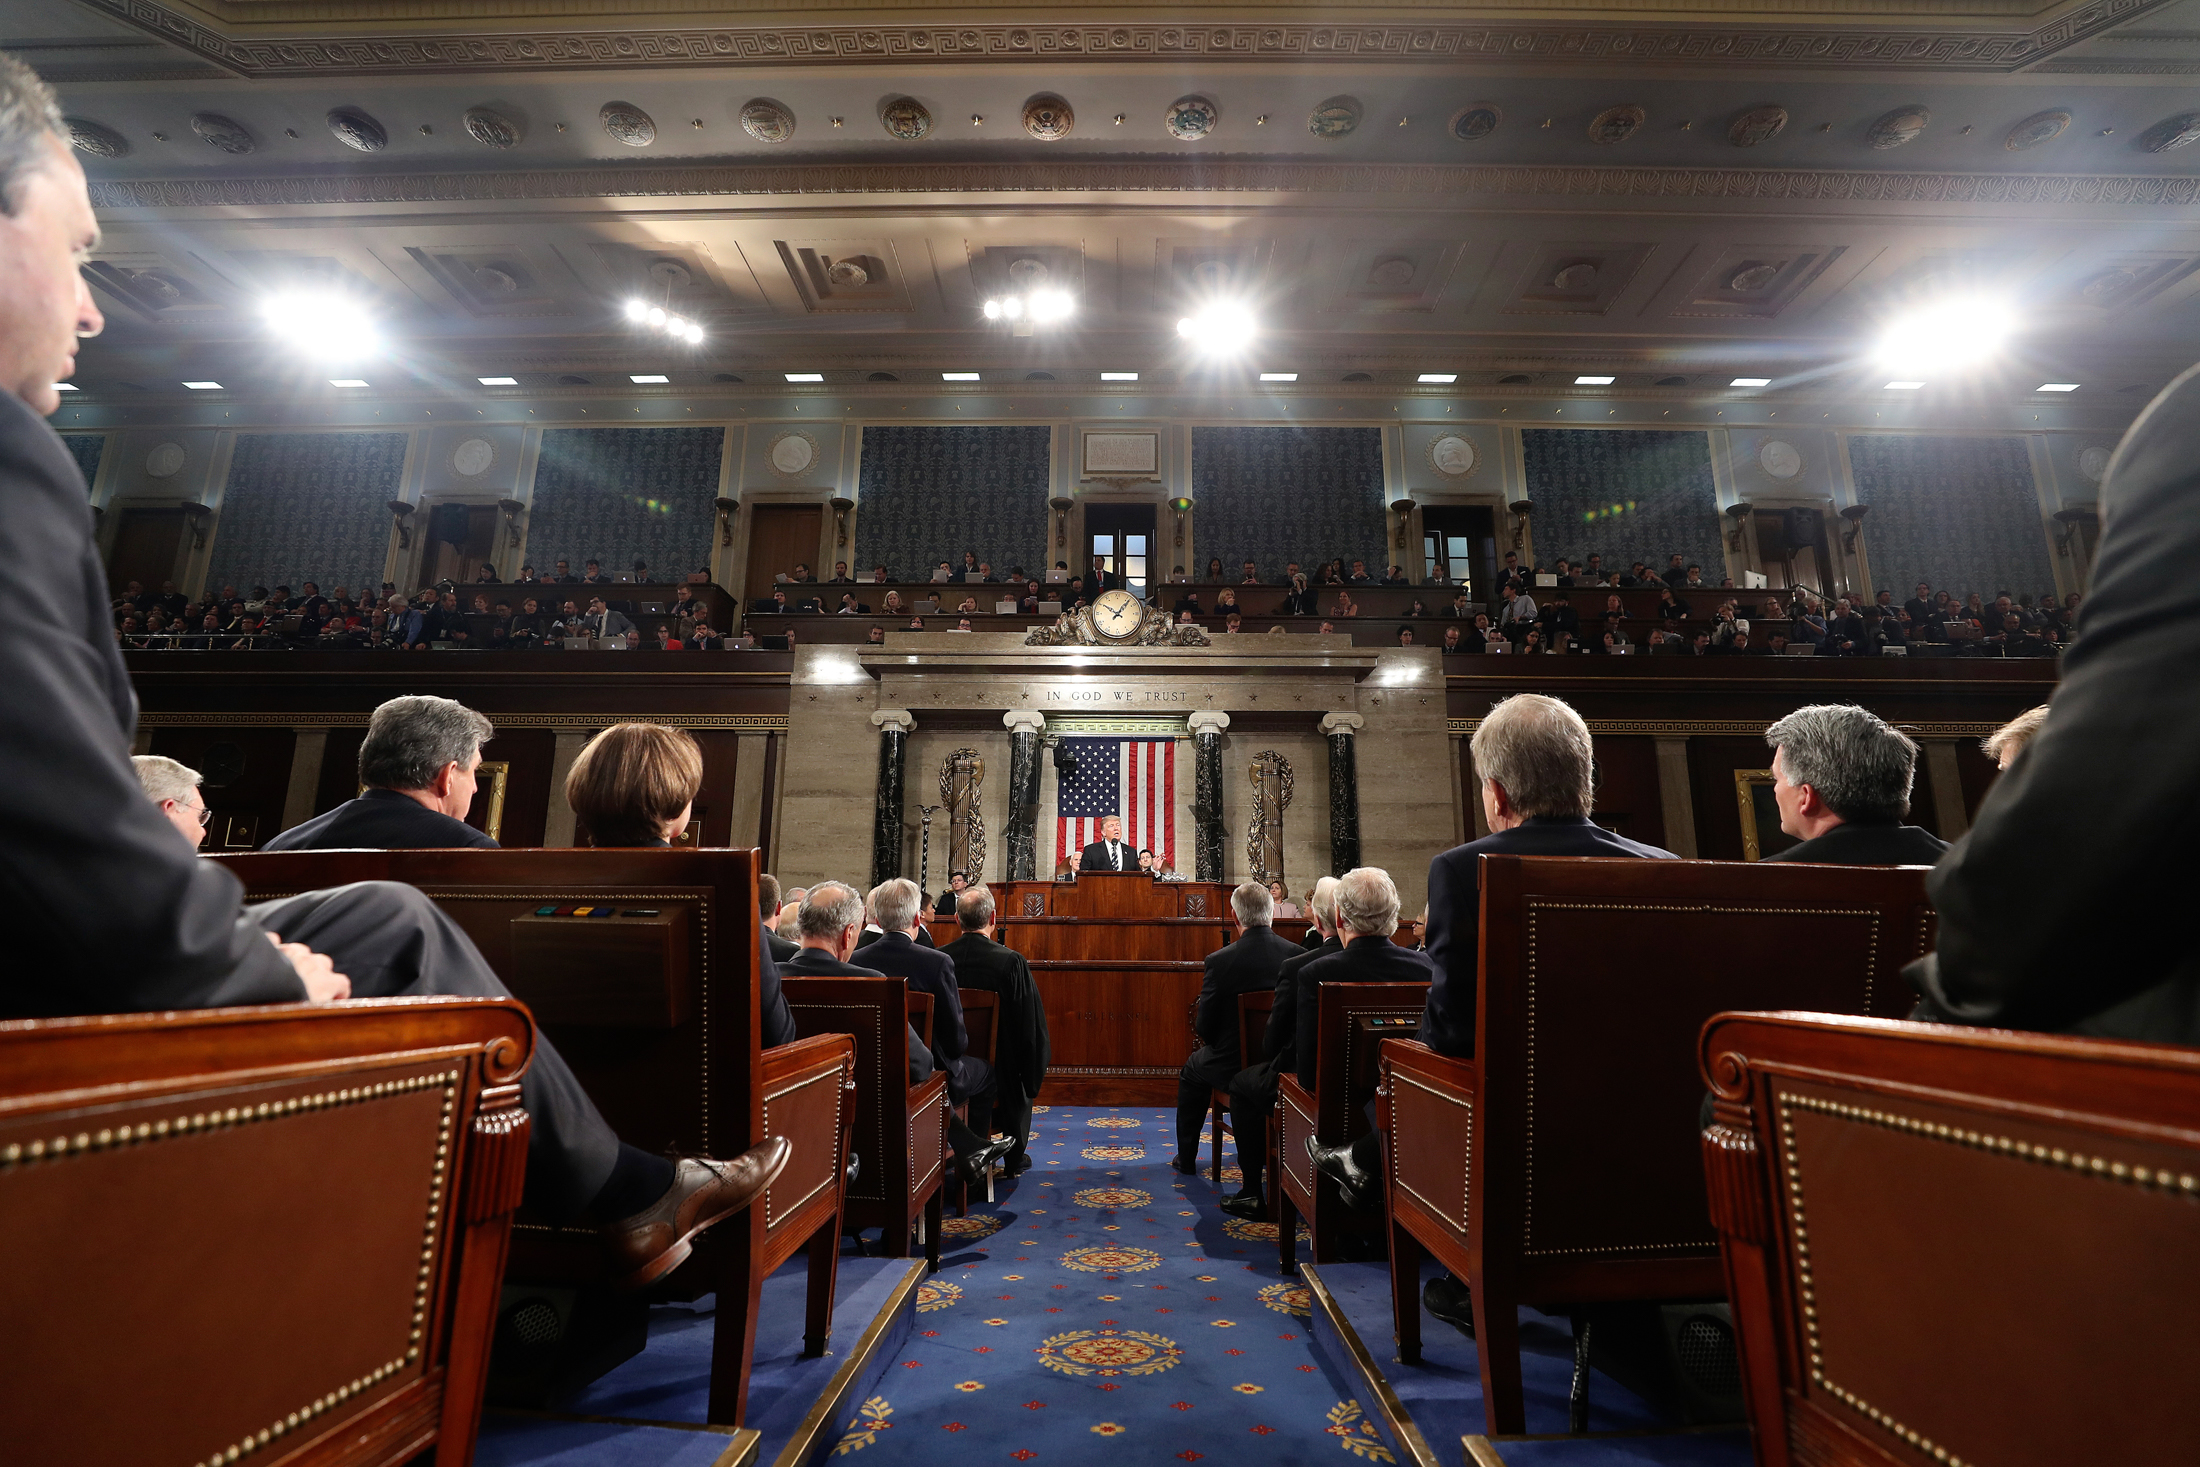 President Donald Trump speaks to a joint session of Congress on Capitol Hill in Washington, Tuesday, Feb. 28, 2017. (Jim Lo Scalzo/AP)